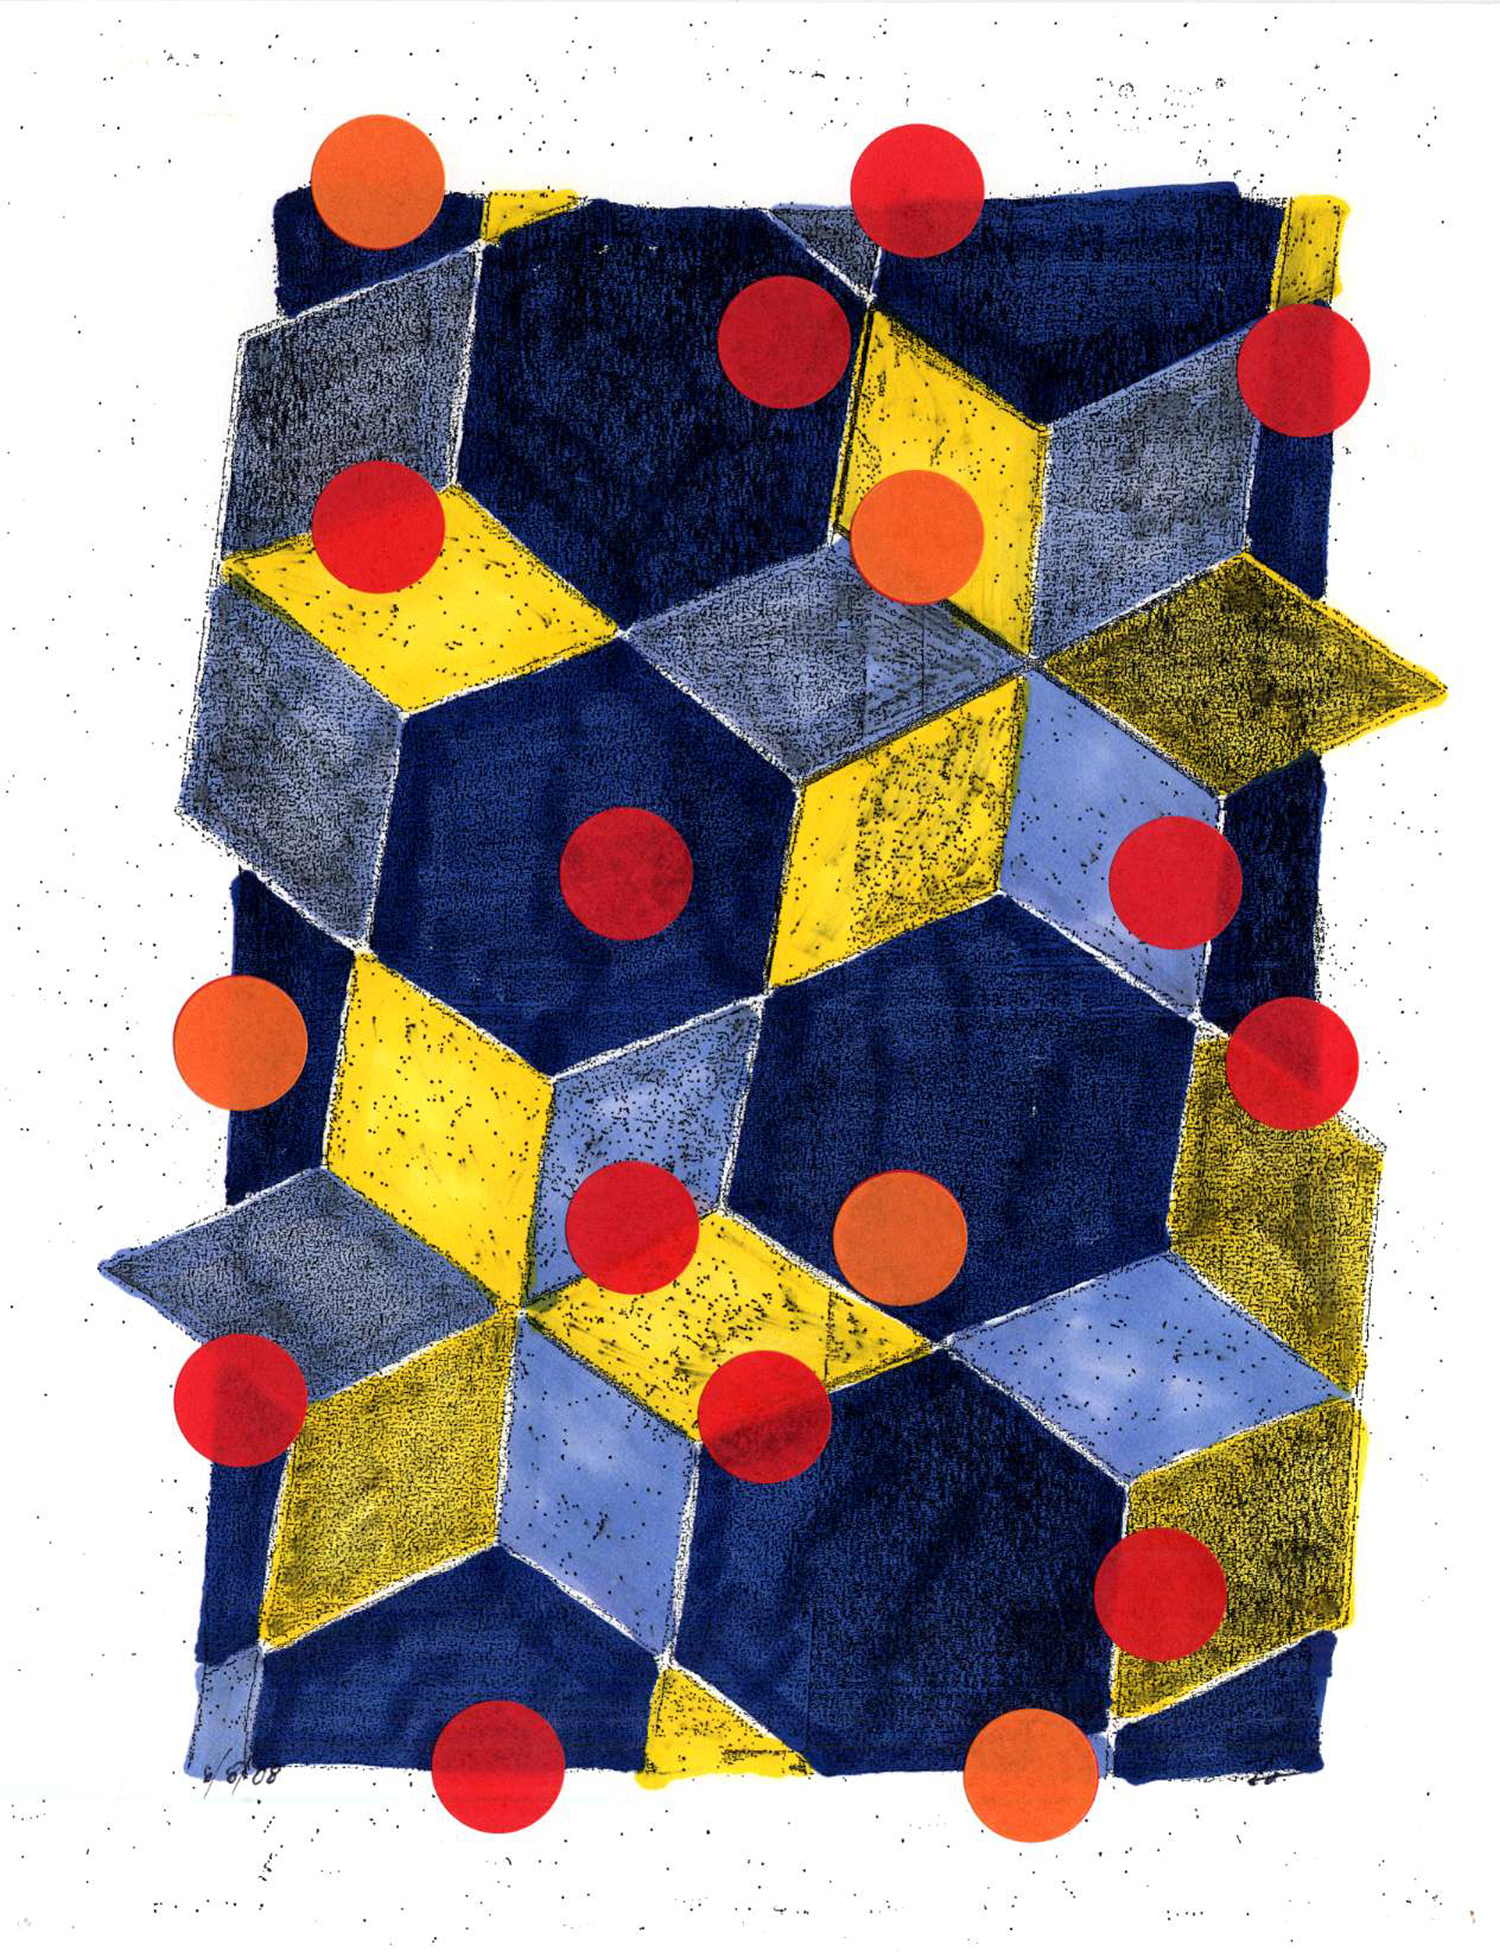 dwg08_20  , 2008, mixed media on paper, 12 x 9 in.